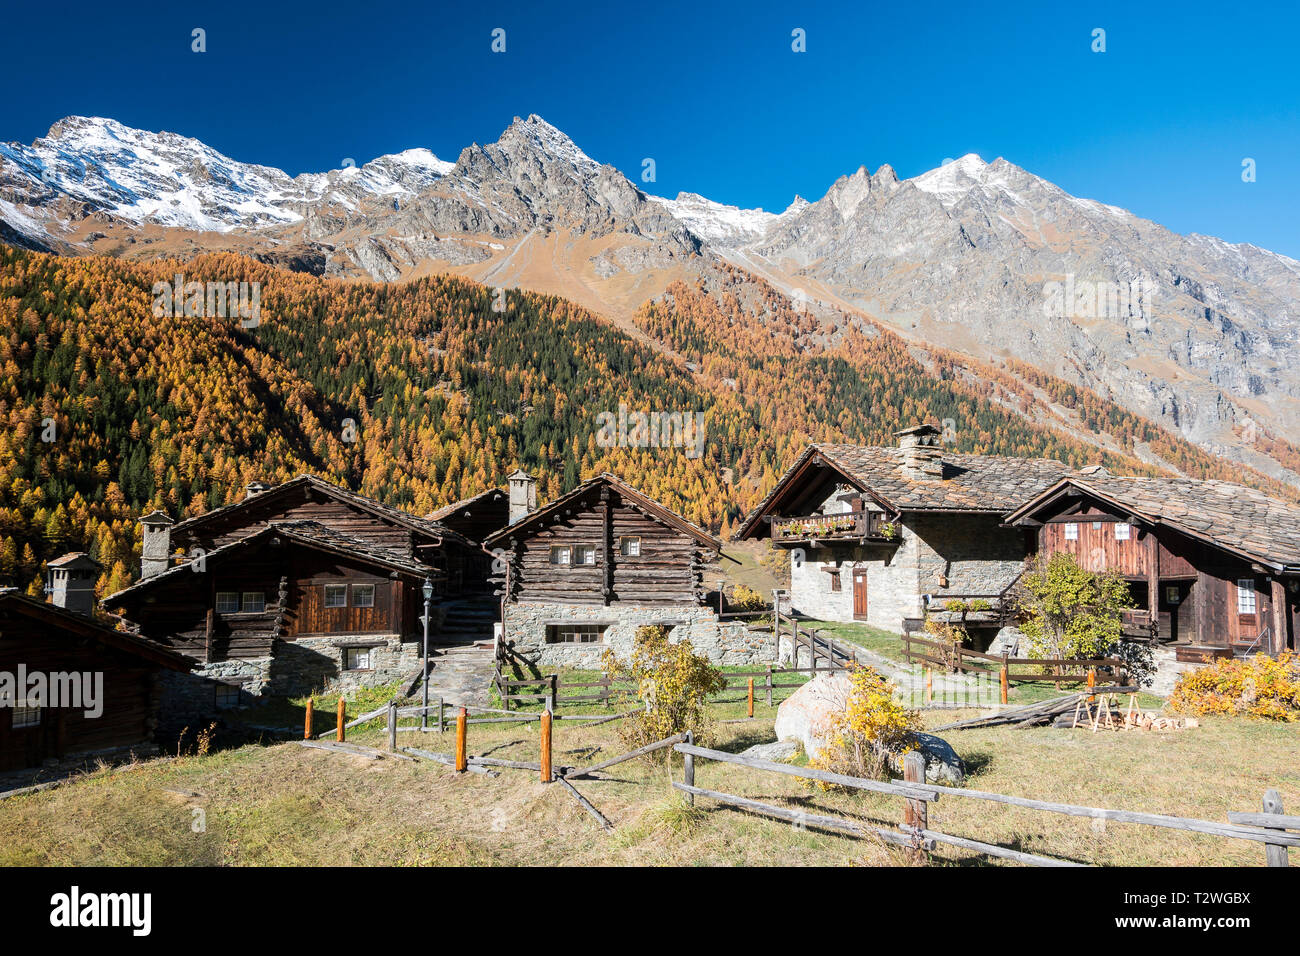 Italy, Valsavarenche, Gran Paradiso National Park, the village of Nex, renovated respecting the original outline by the architect Franco Binel; Norway Spruce and European larch forest in autumn - Stock Image